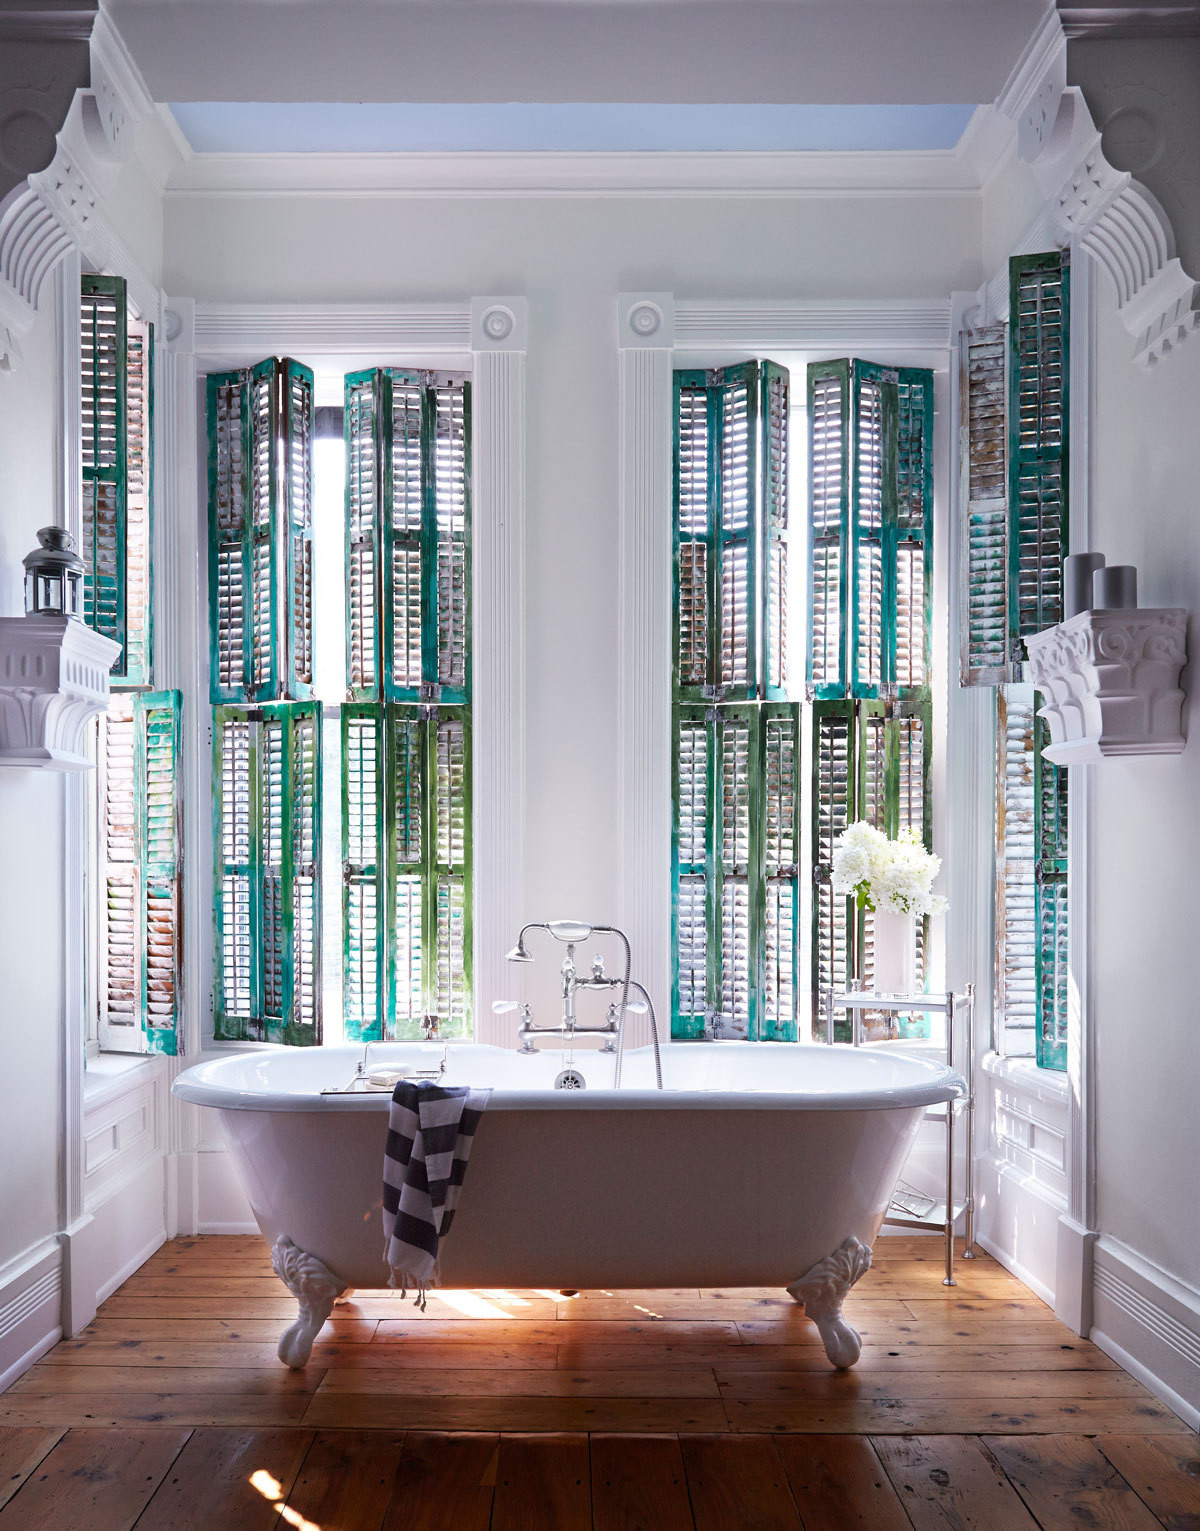 Moylan's dressing room sits off her bedroom, and features a shapely claw-foot tub surrounded by shutters she painted herself in varying shades of green.